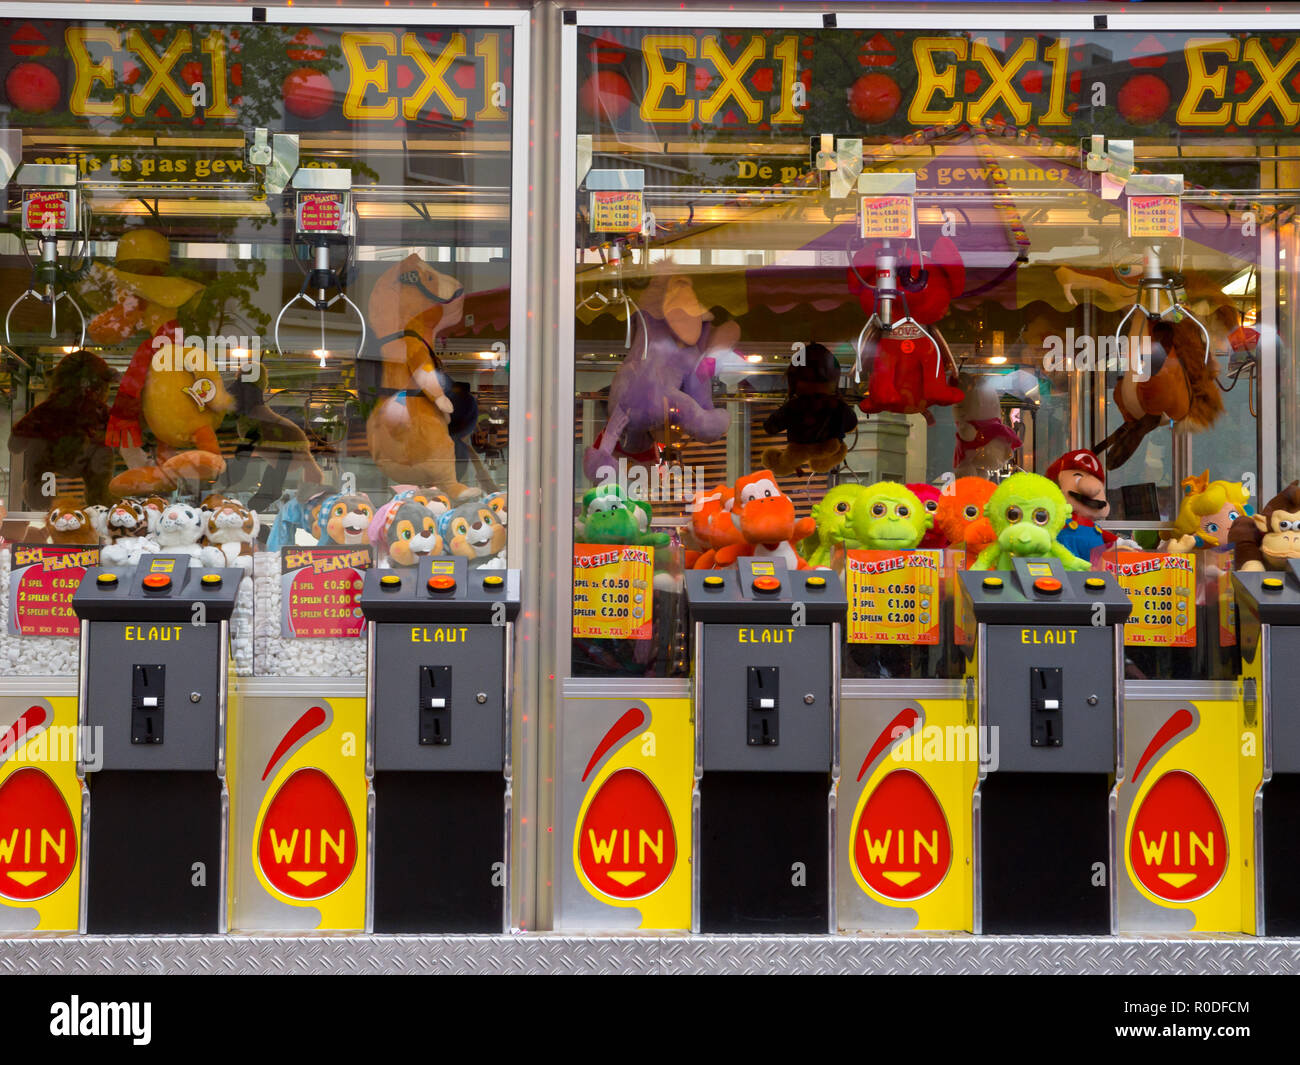 Arcade crane claw machine on an arcade in The Netherlands, Europe - Stock Image